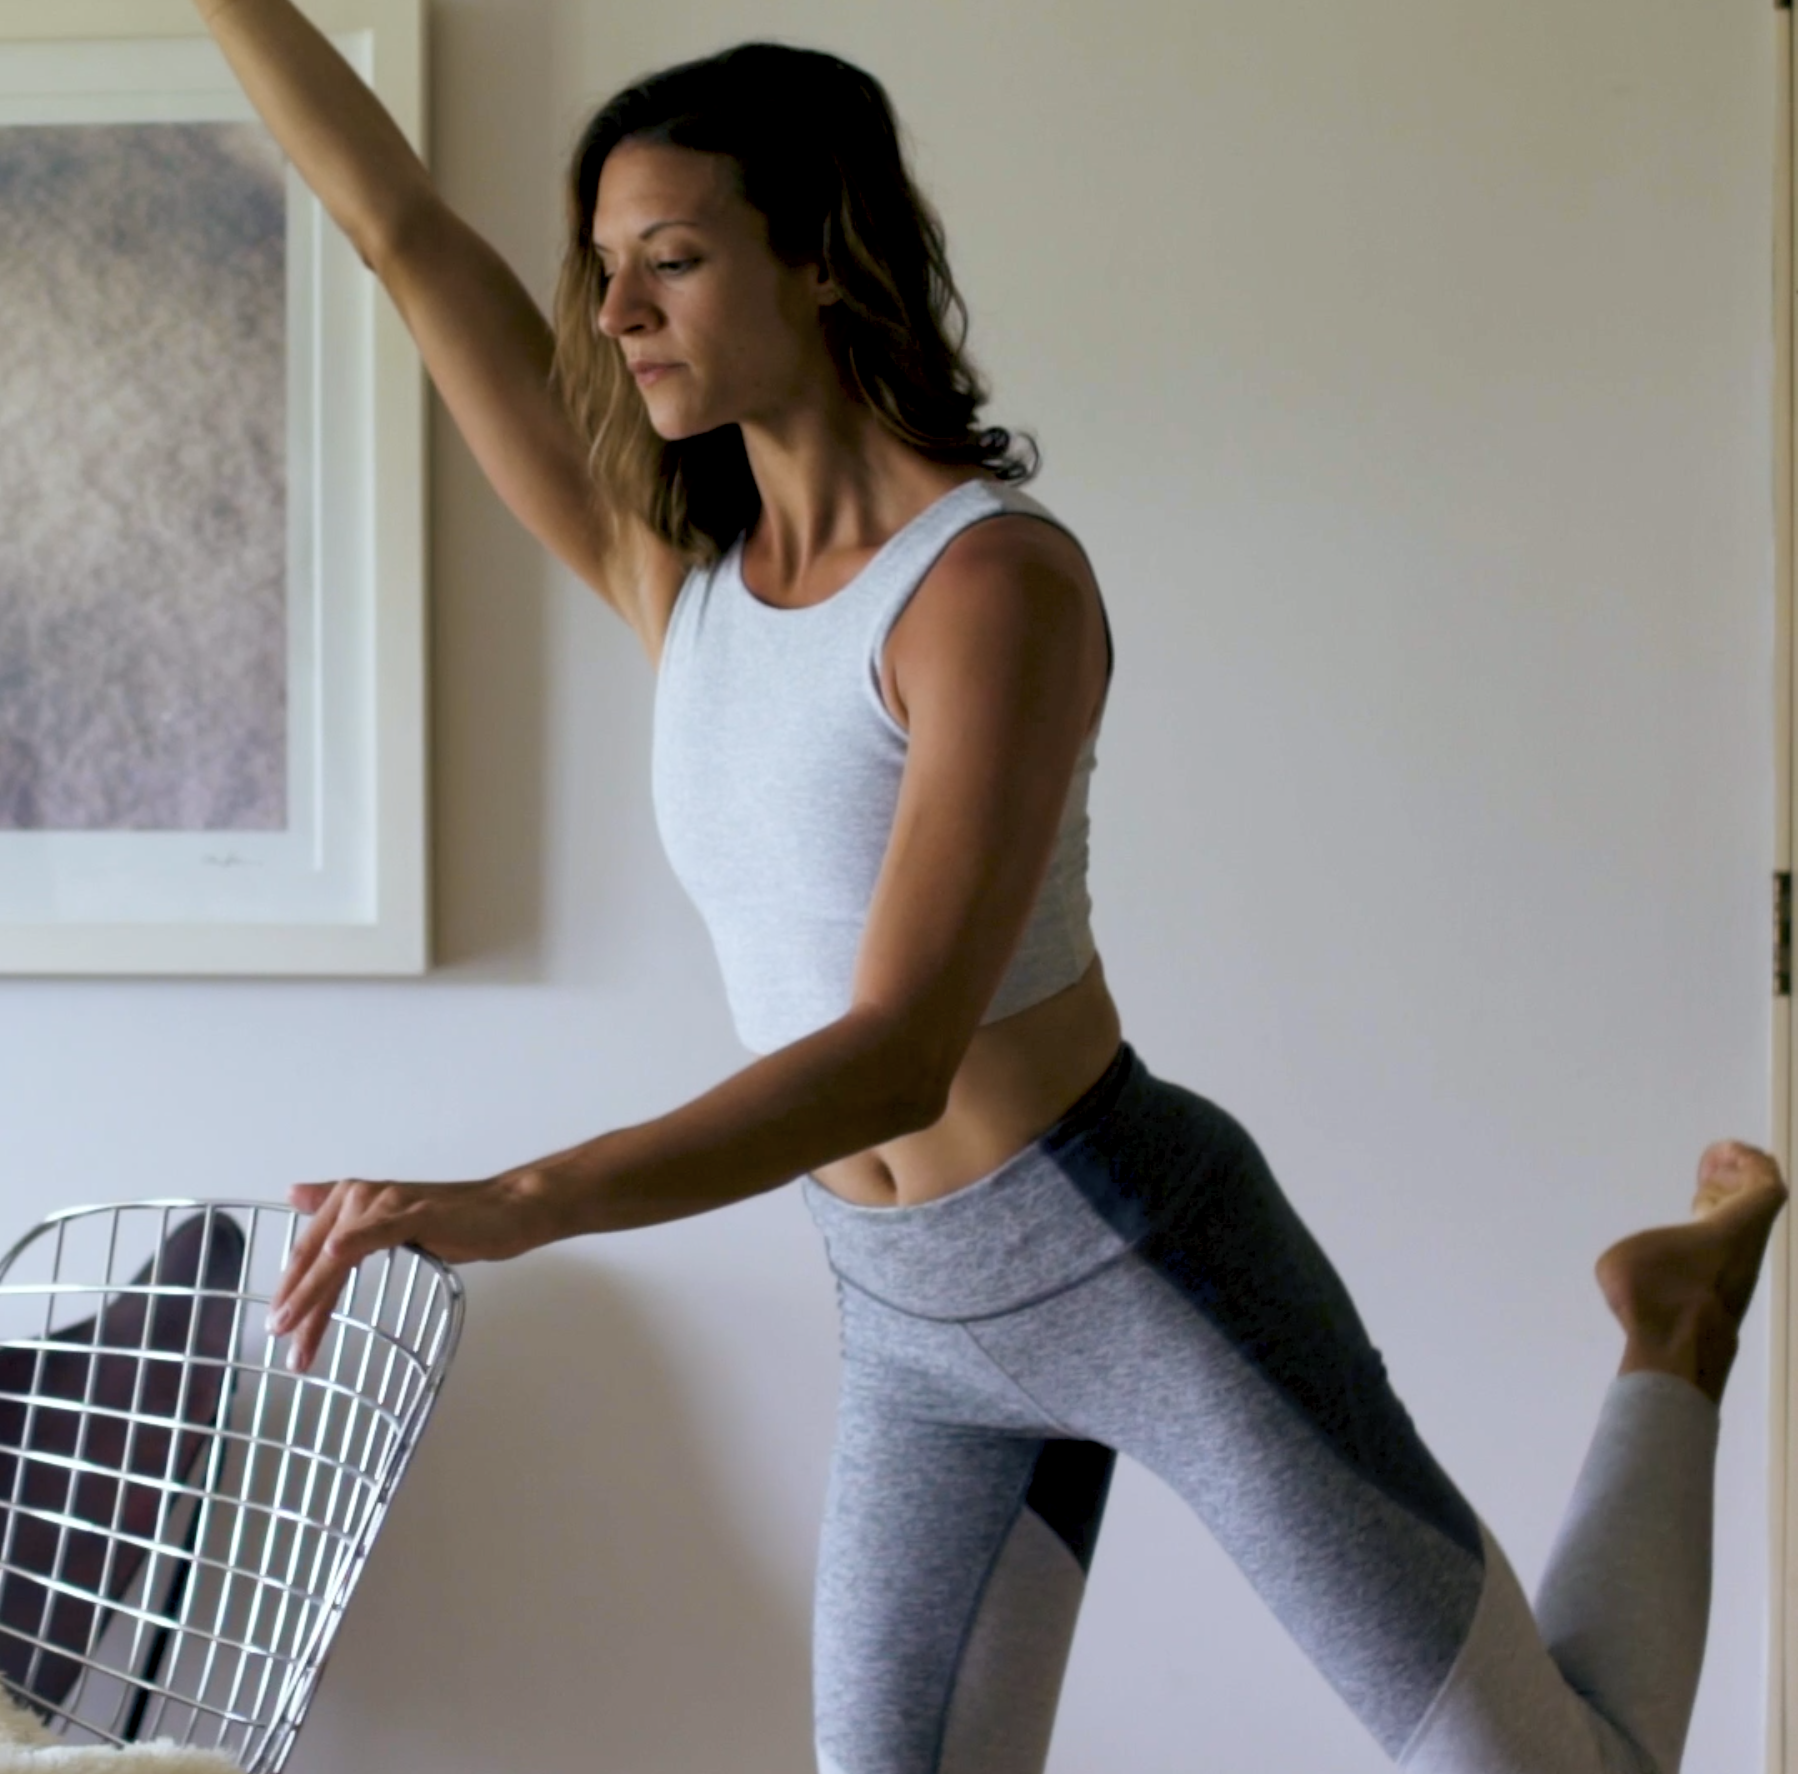 Woman leaning on chair while doing at-home barre exercise.